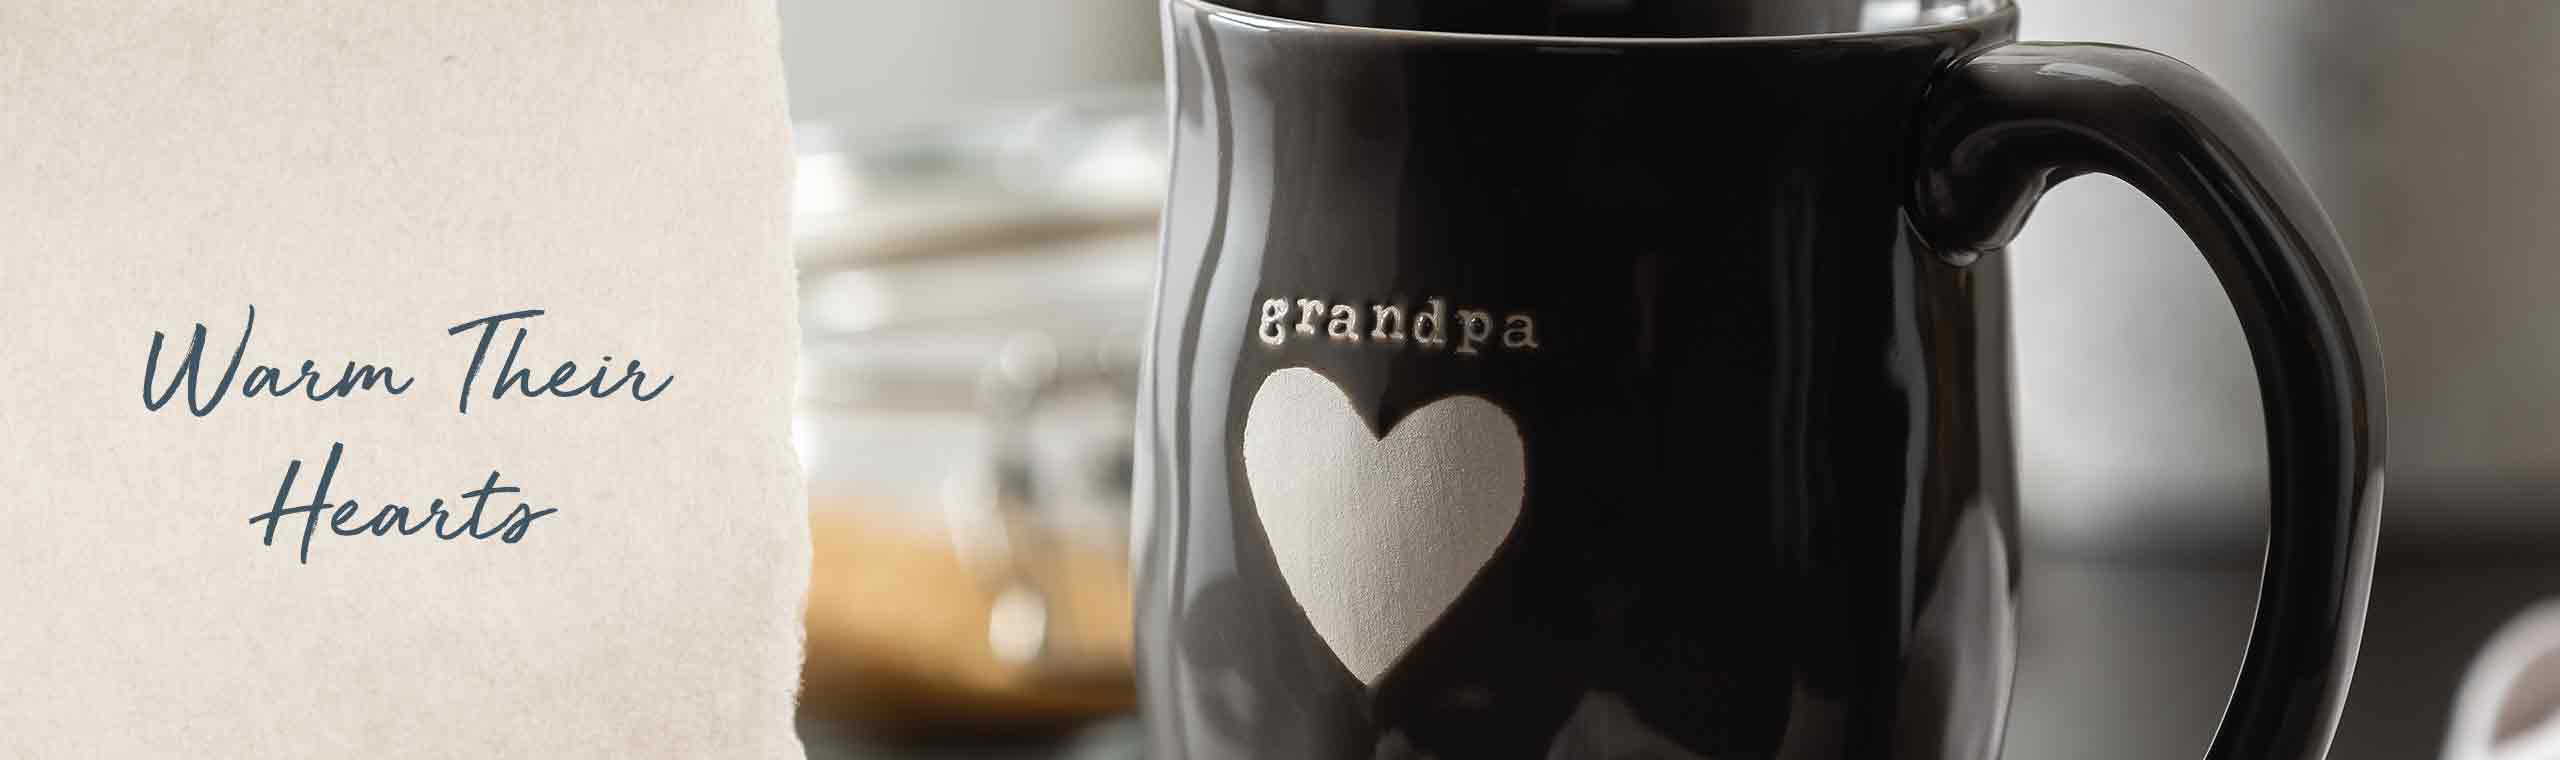 Warm their hearts! a black mug with grandpa writen